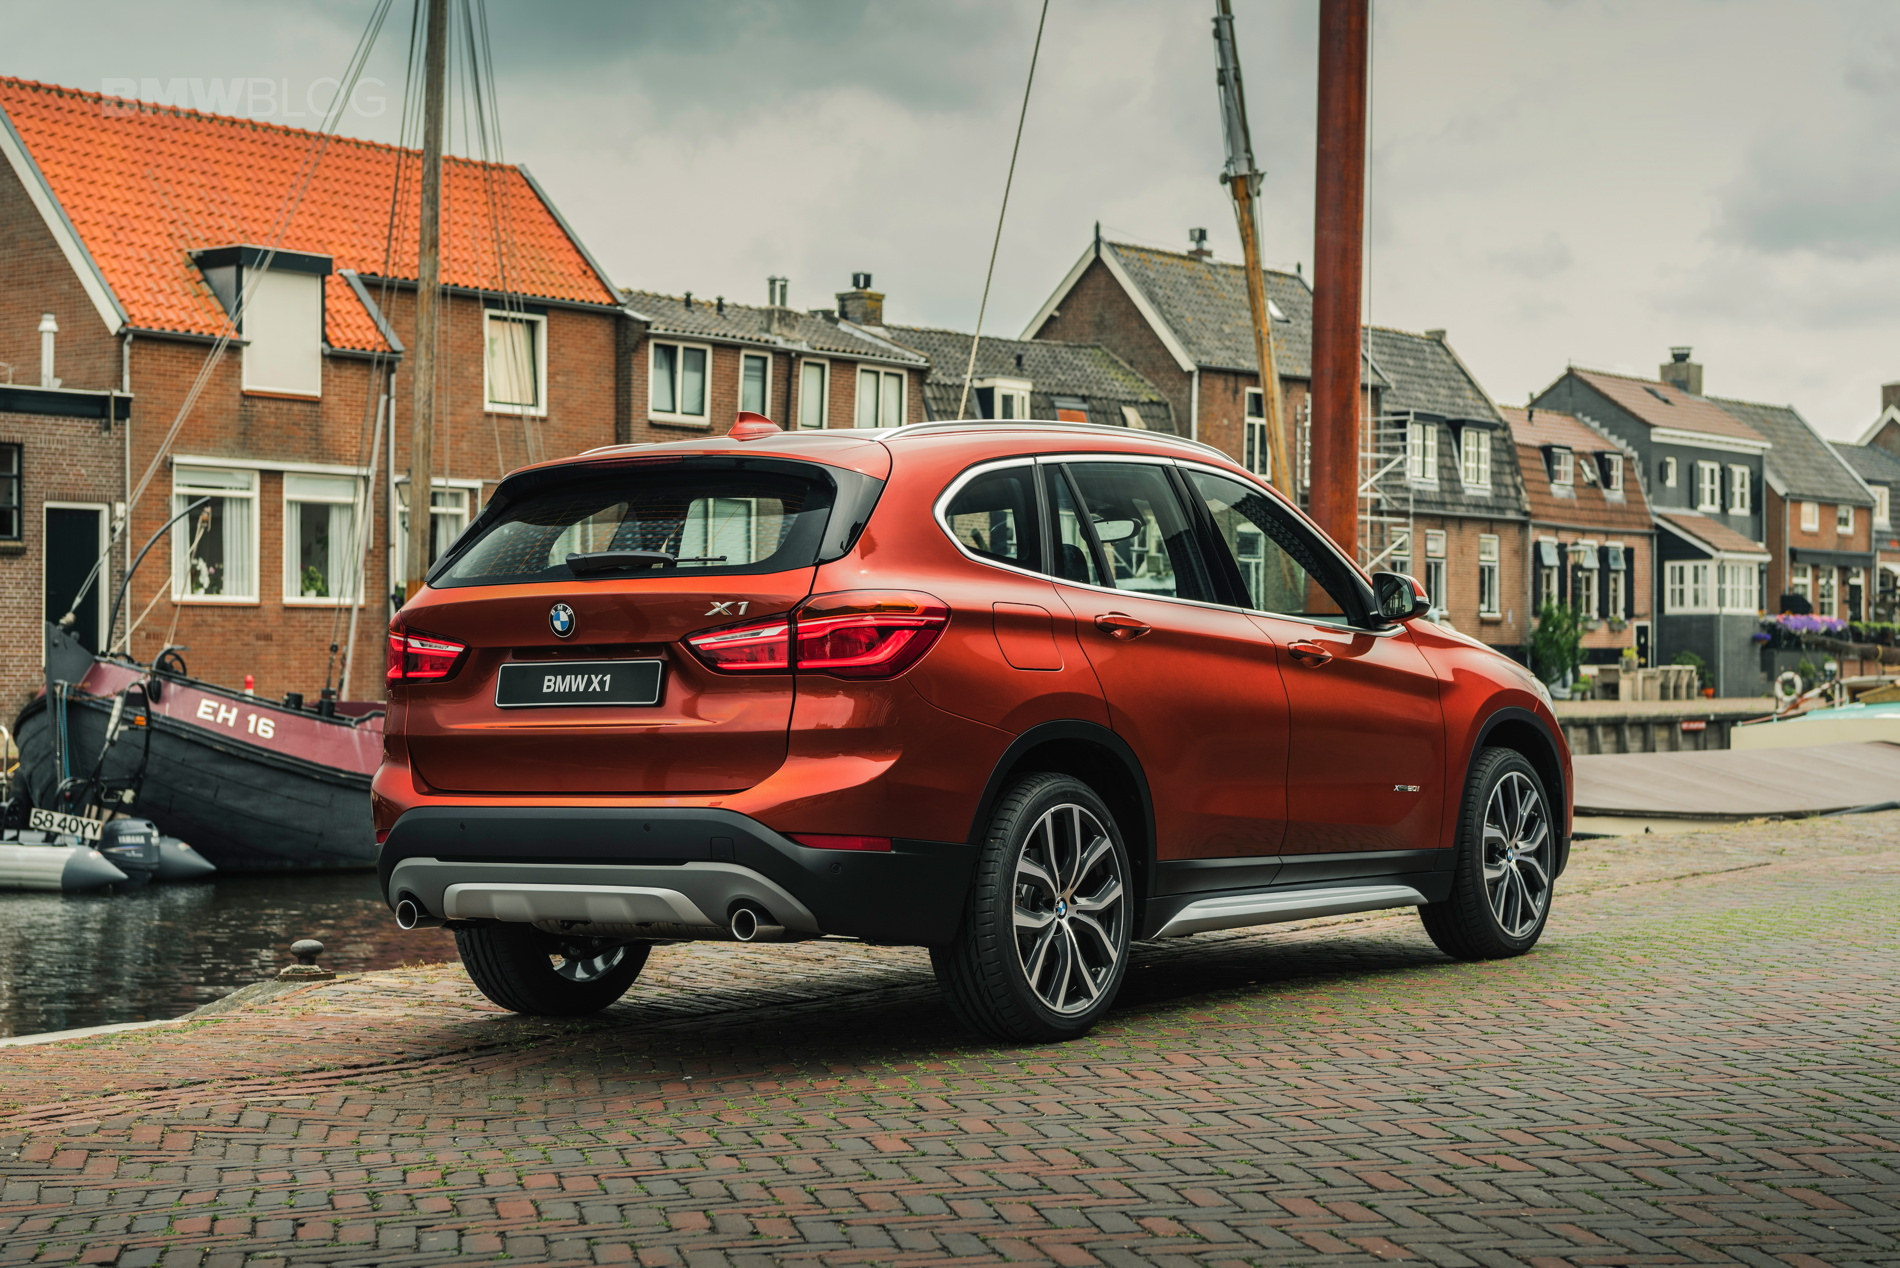 Toyota Suv 2019 >> 2017 BMW X1 Orange Edition: Special model in the Netherlands